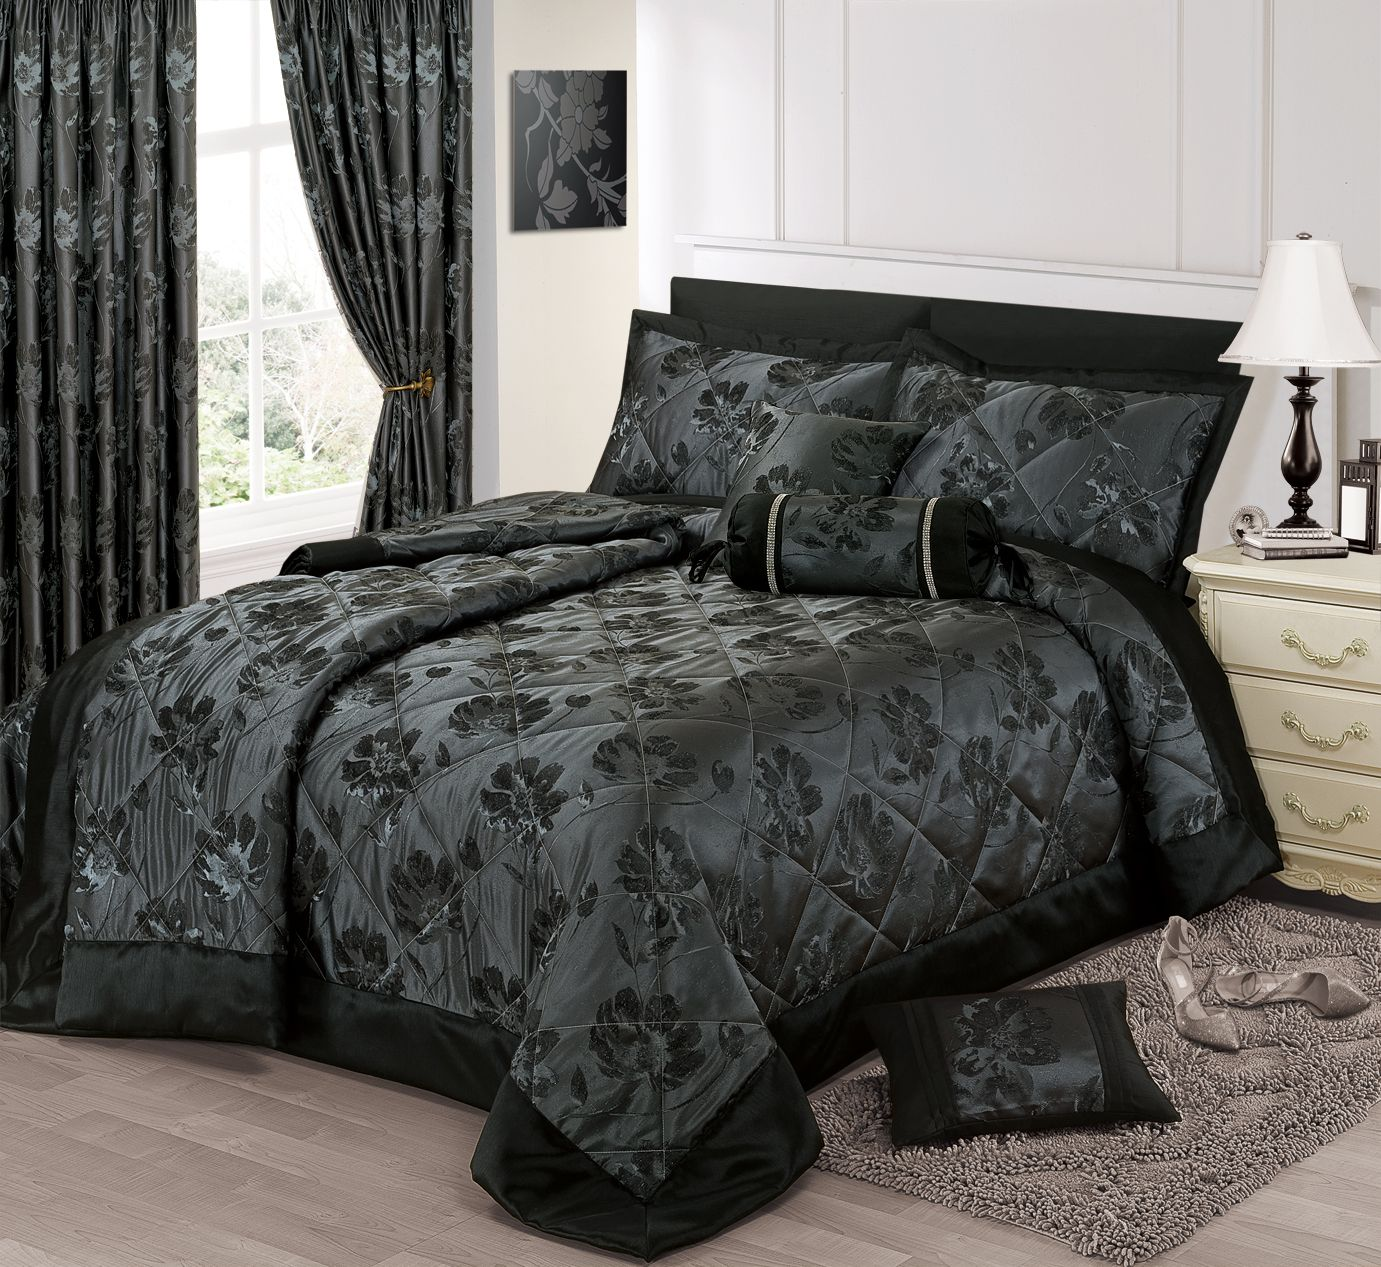 BLACK SILVER COLOUR STYLISH FLORAL JACQUARD LUXURY EMBELLISHED ... : silver quilted bedspread - Adamdwight.com